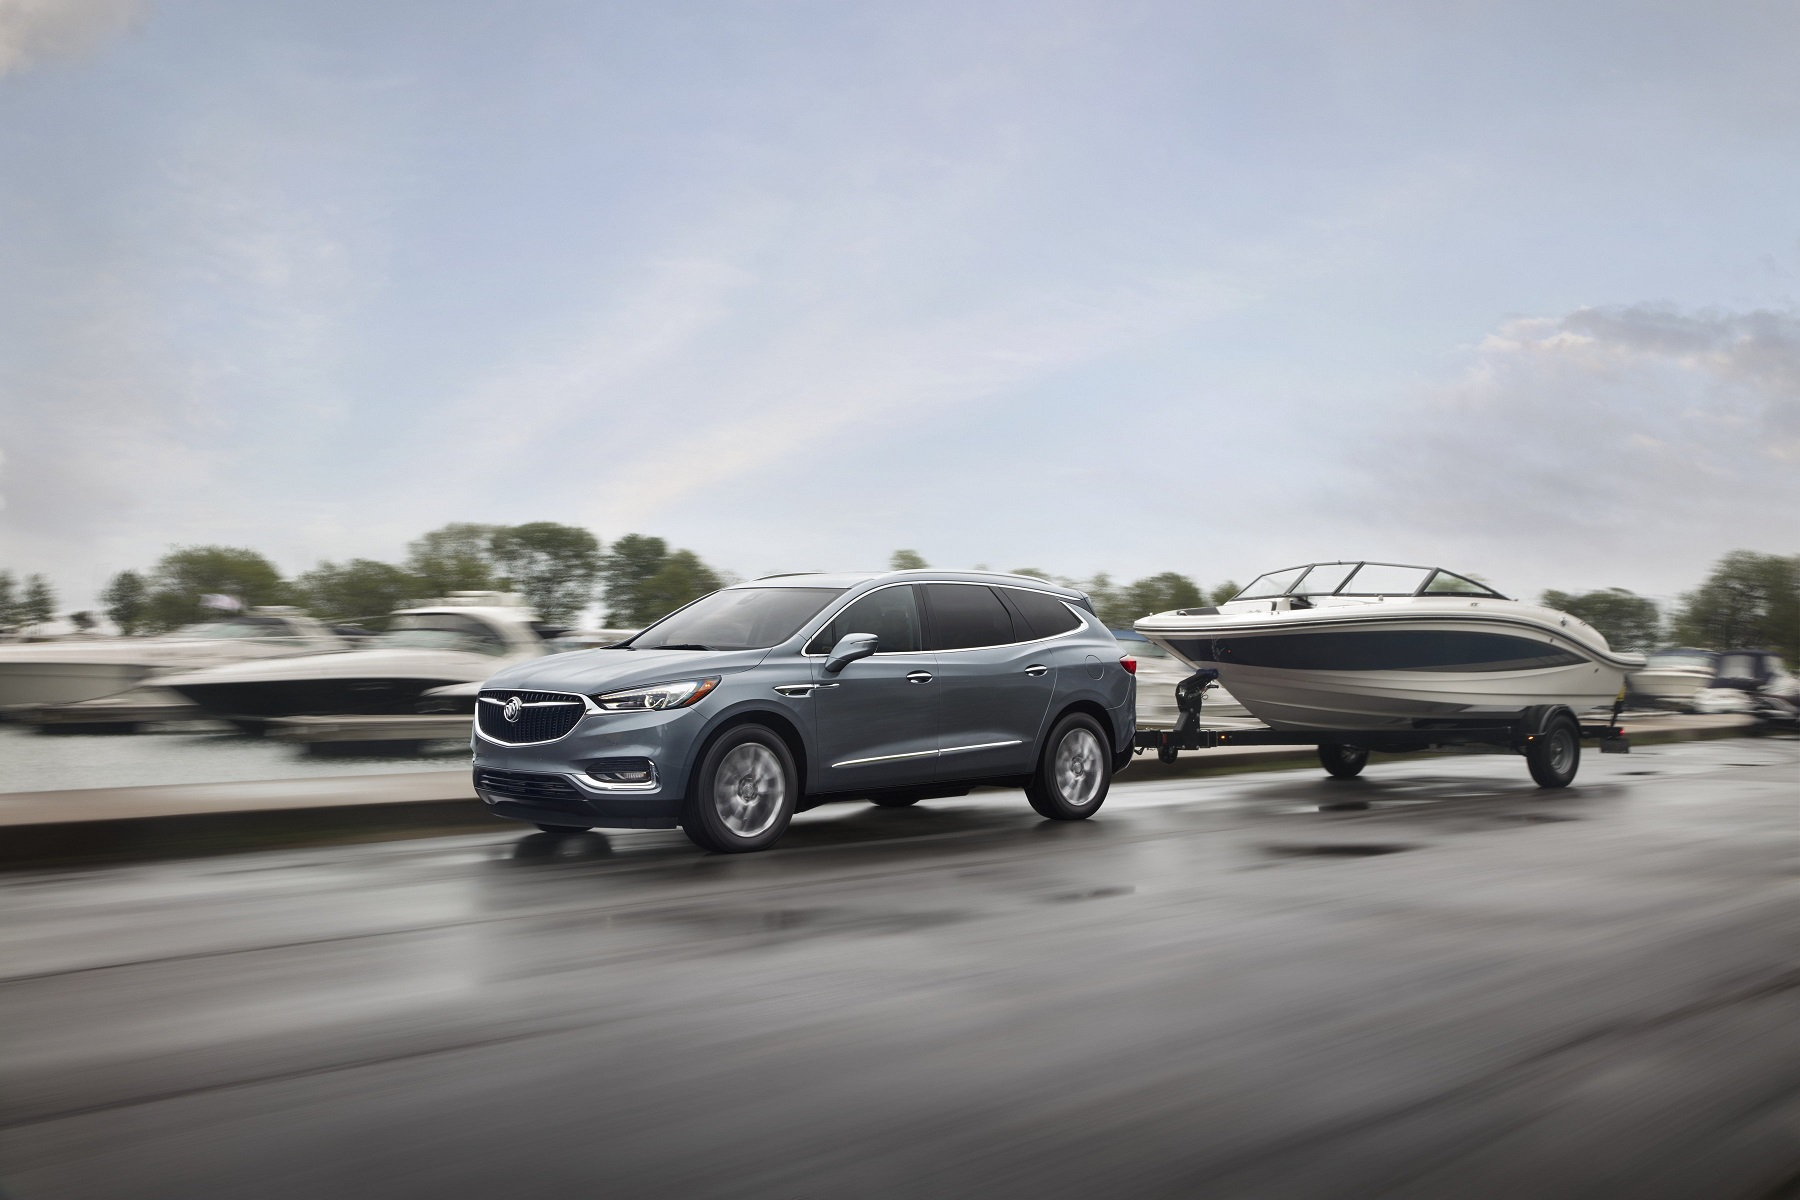 Manufacturer photo: The 2018 Buick Enclave's new design architecture enables a balanced, athletic appearance